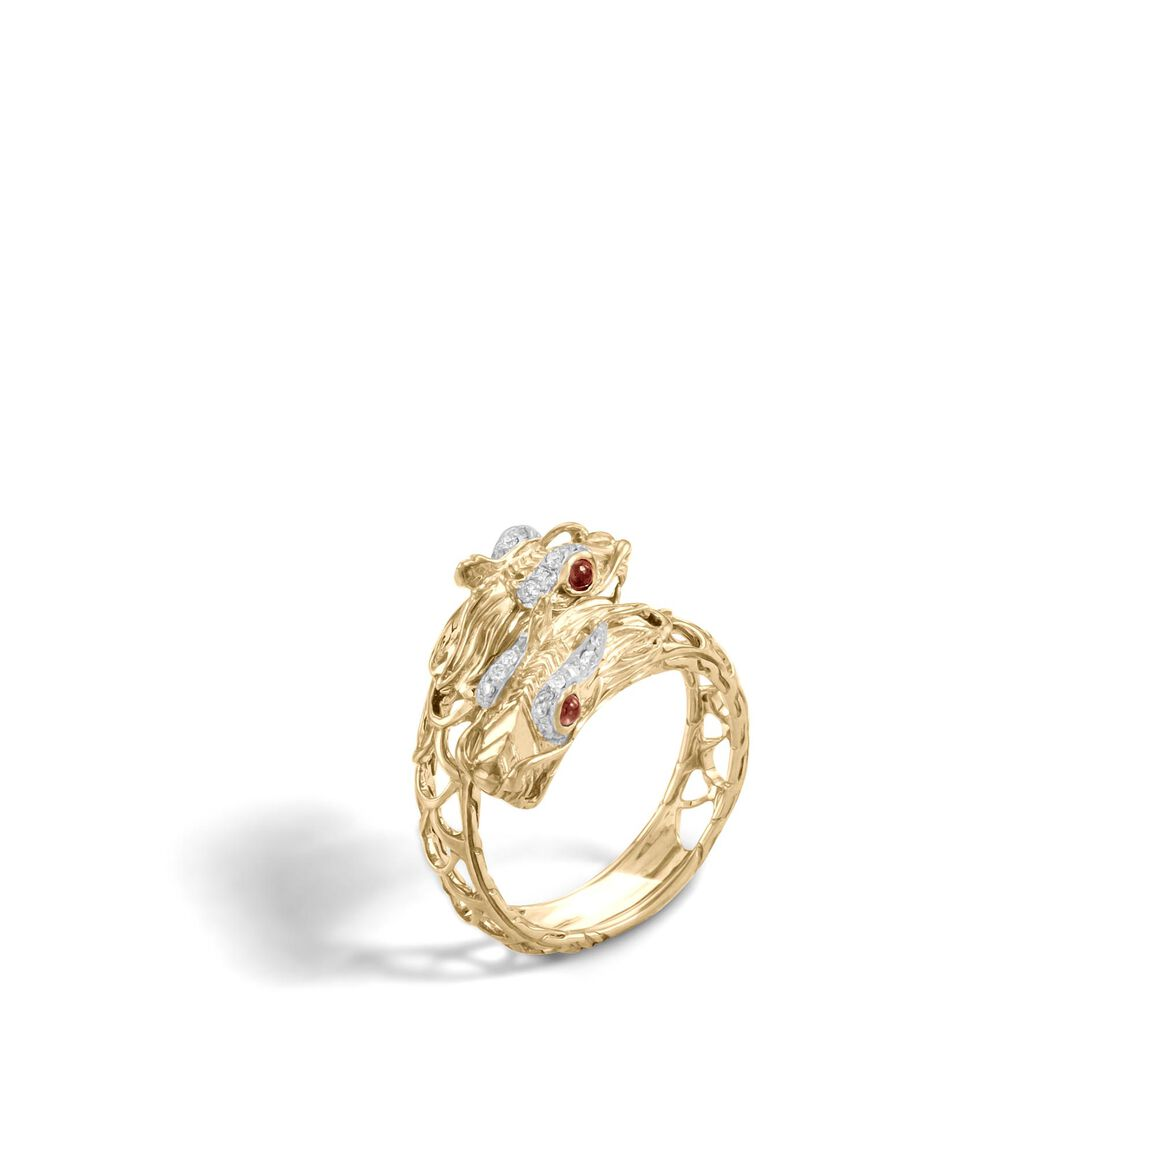 Legends Naga Double Head Bypass Ring in 18K Gold, Diamonds